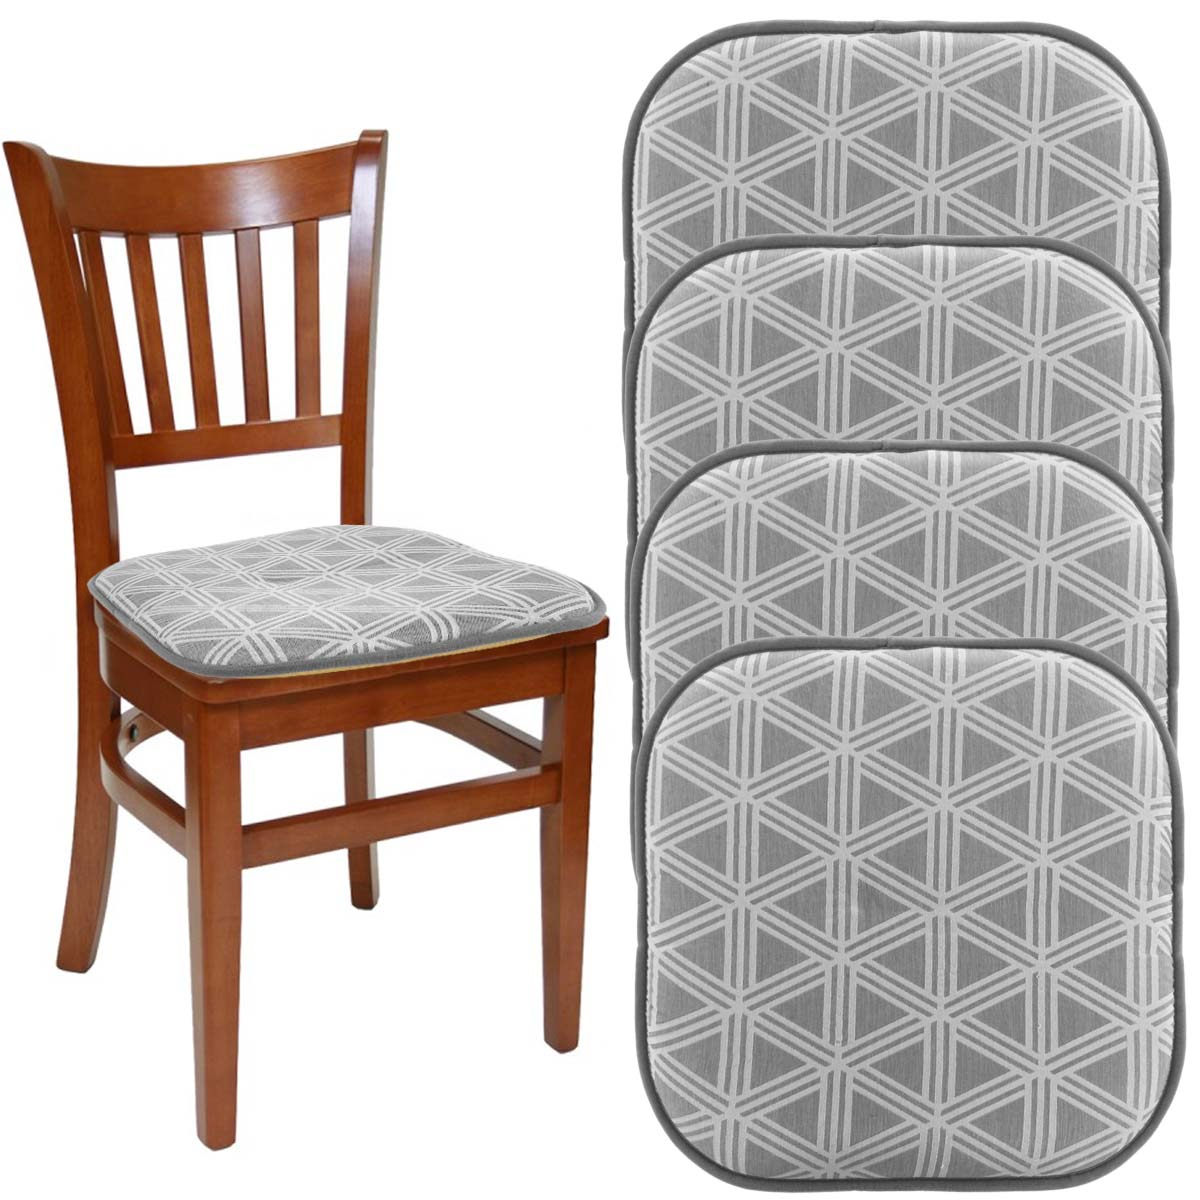 chair pads kitchen wheelchair basketball rules dream home set of 4 gripper for office chairs grey 16 x indoor seat cushion pillow rocking